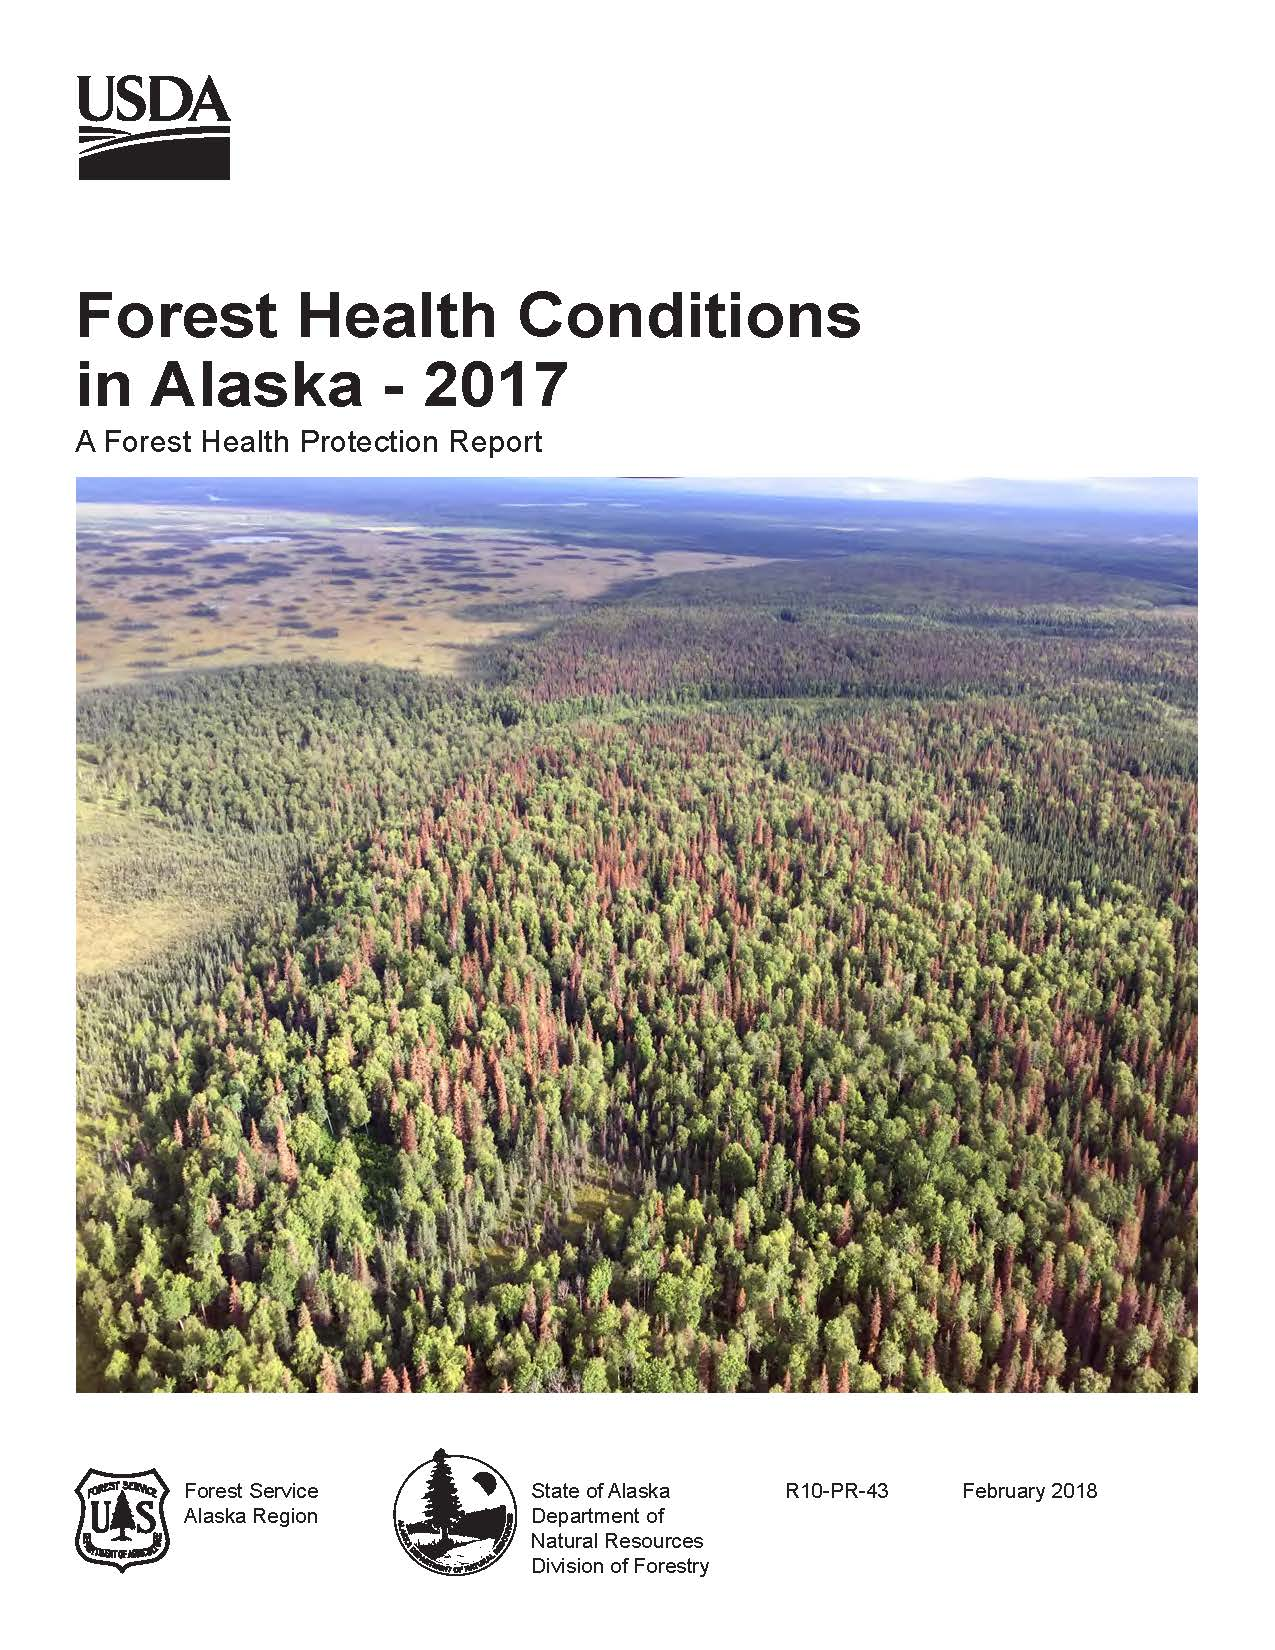 Cover image for FY17 report